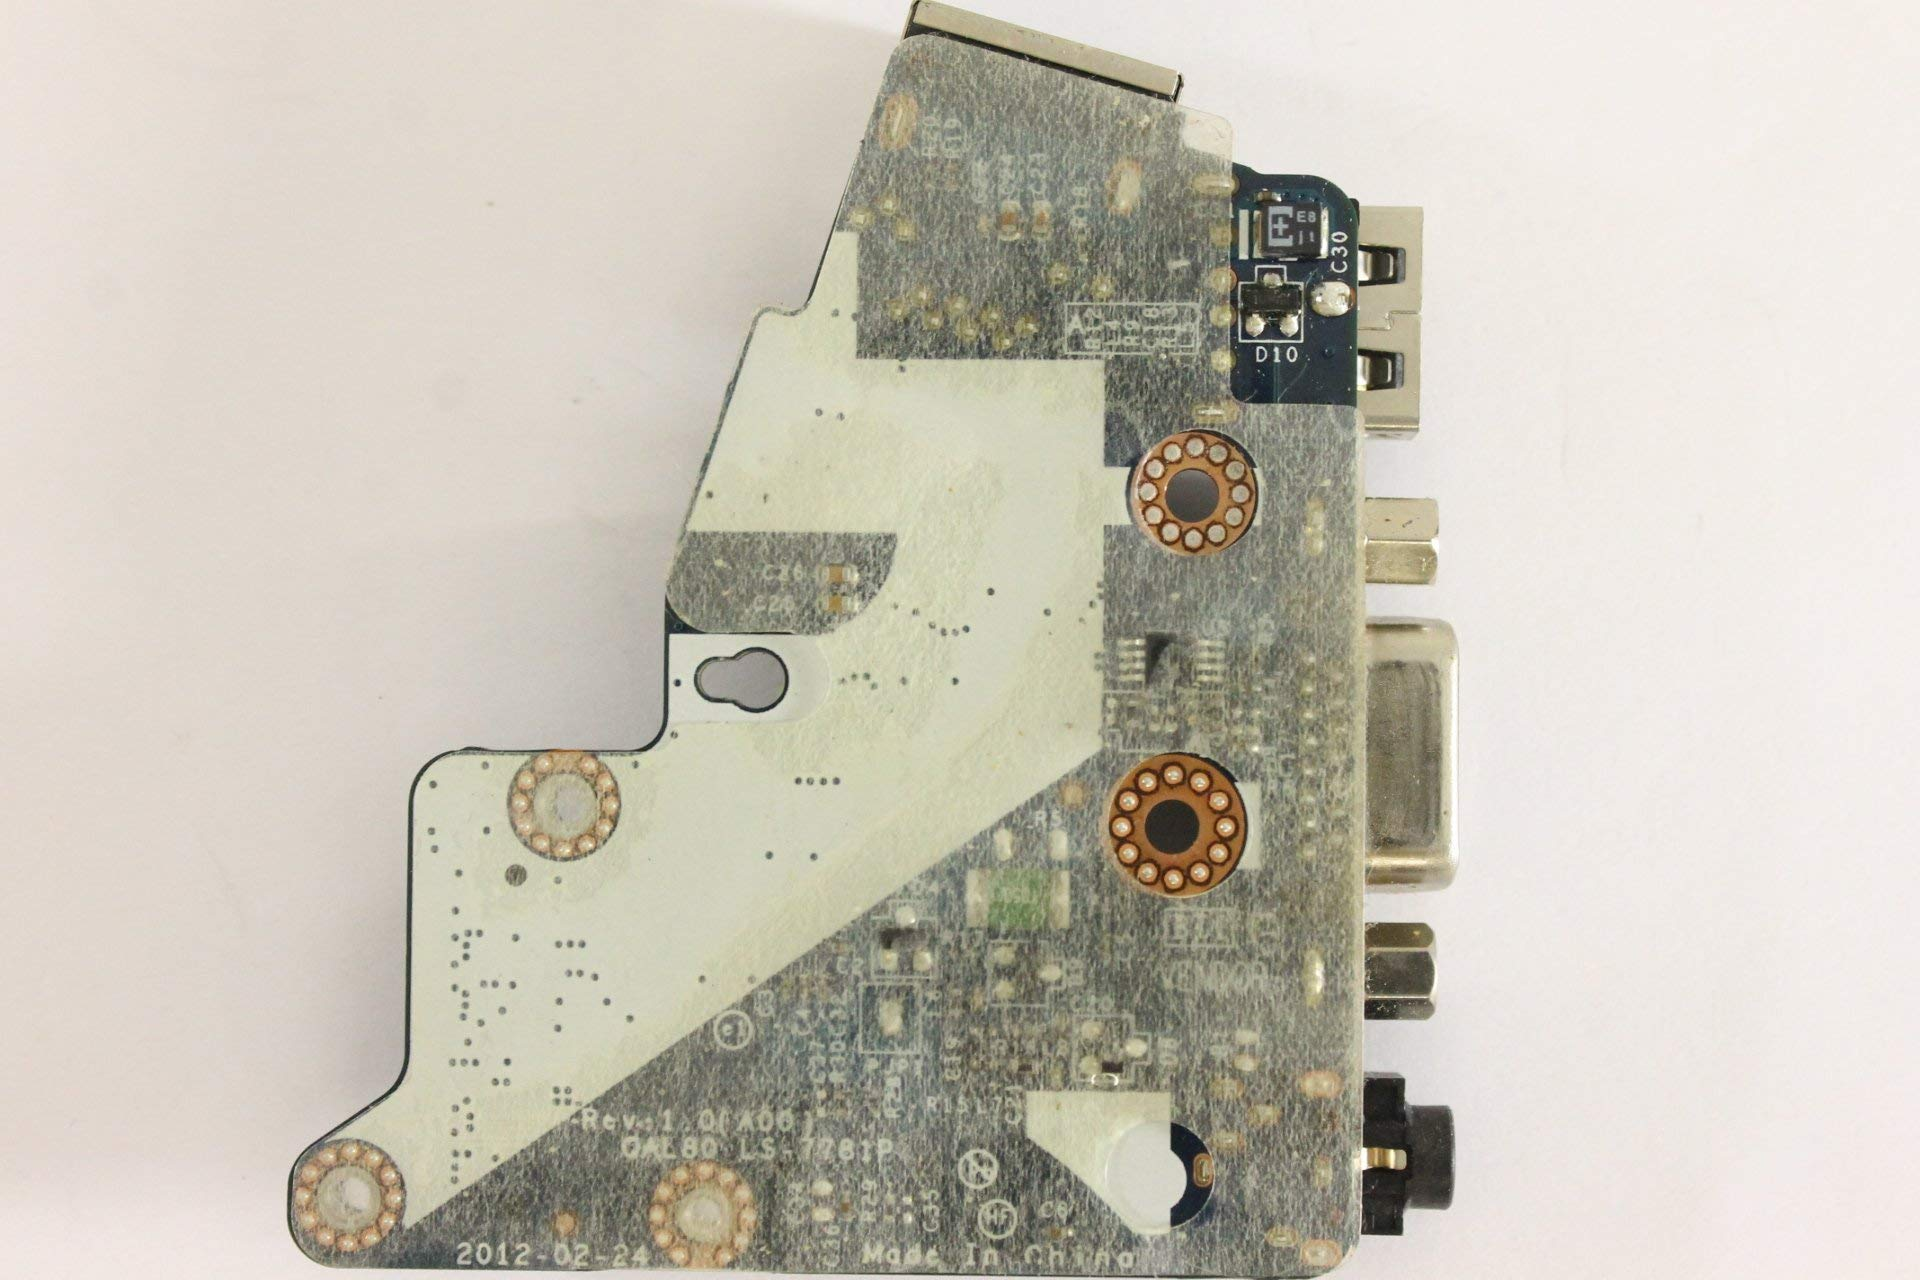 Dell Latitude E6430 51WP9 Audio Ethernet USB VGA Modem Board LS-7781P (Certified Refurbished) by Dell (Image #2)